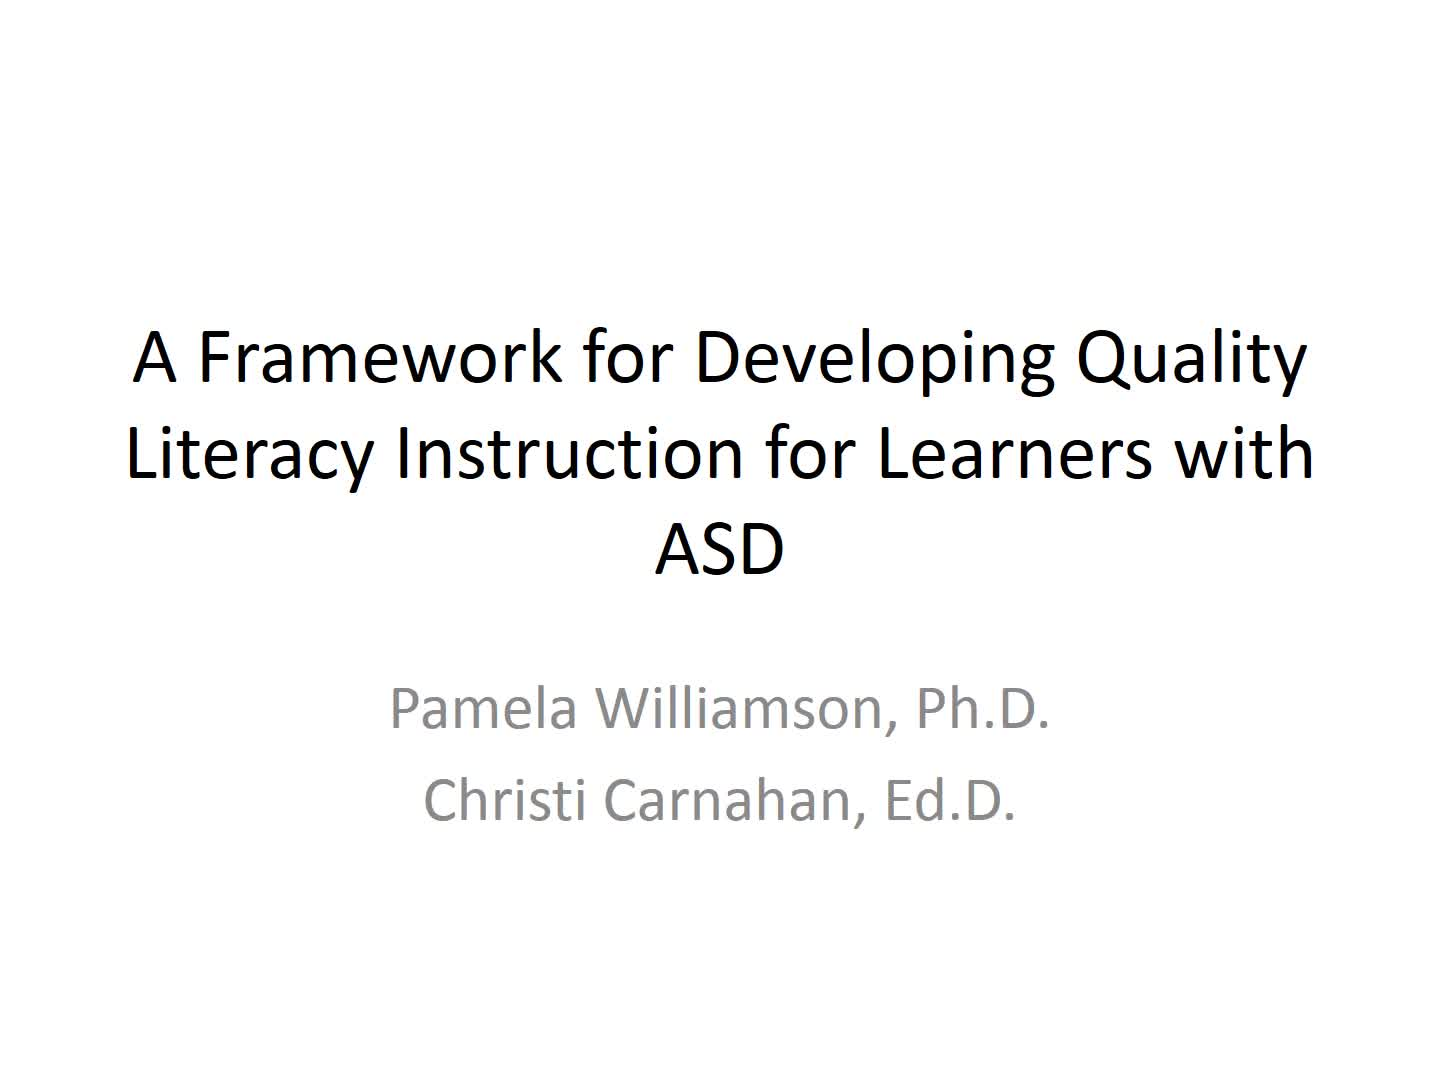 A Framework for Developing Quality Literacy Instruction for Learners with ASD Part 2